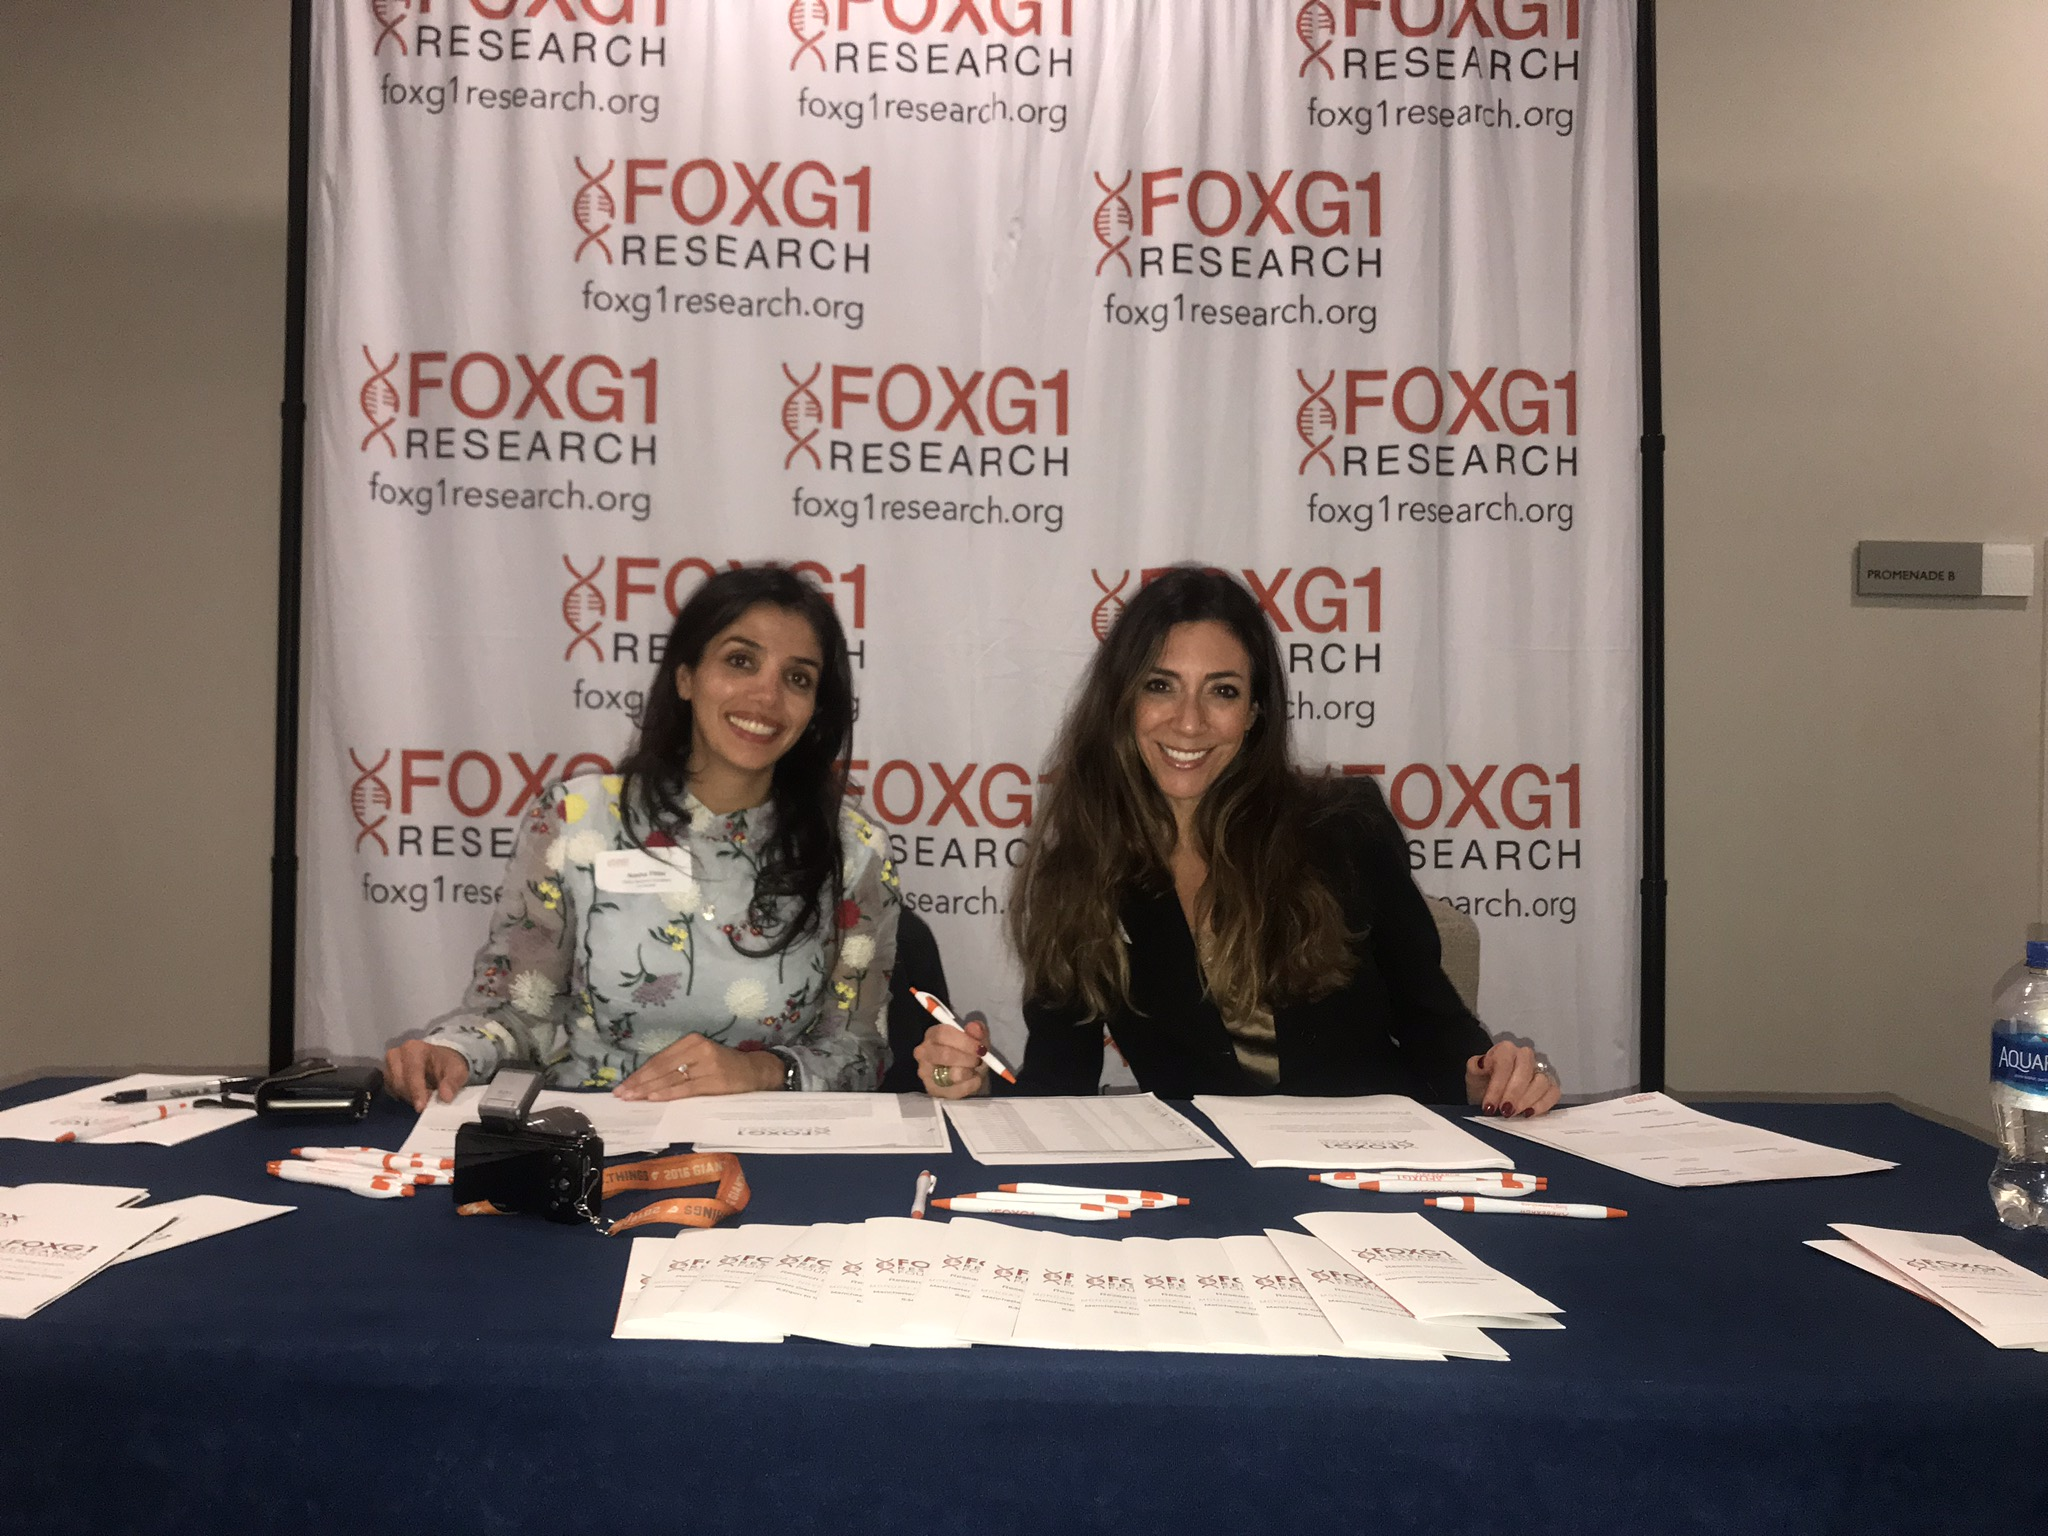 FOXG1 Research Foundation co-founders Nasha Fitter and Nicole Johnson sit behind a table in a conference room smiling at the camera.